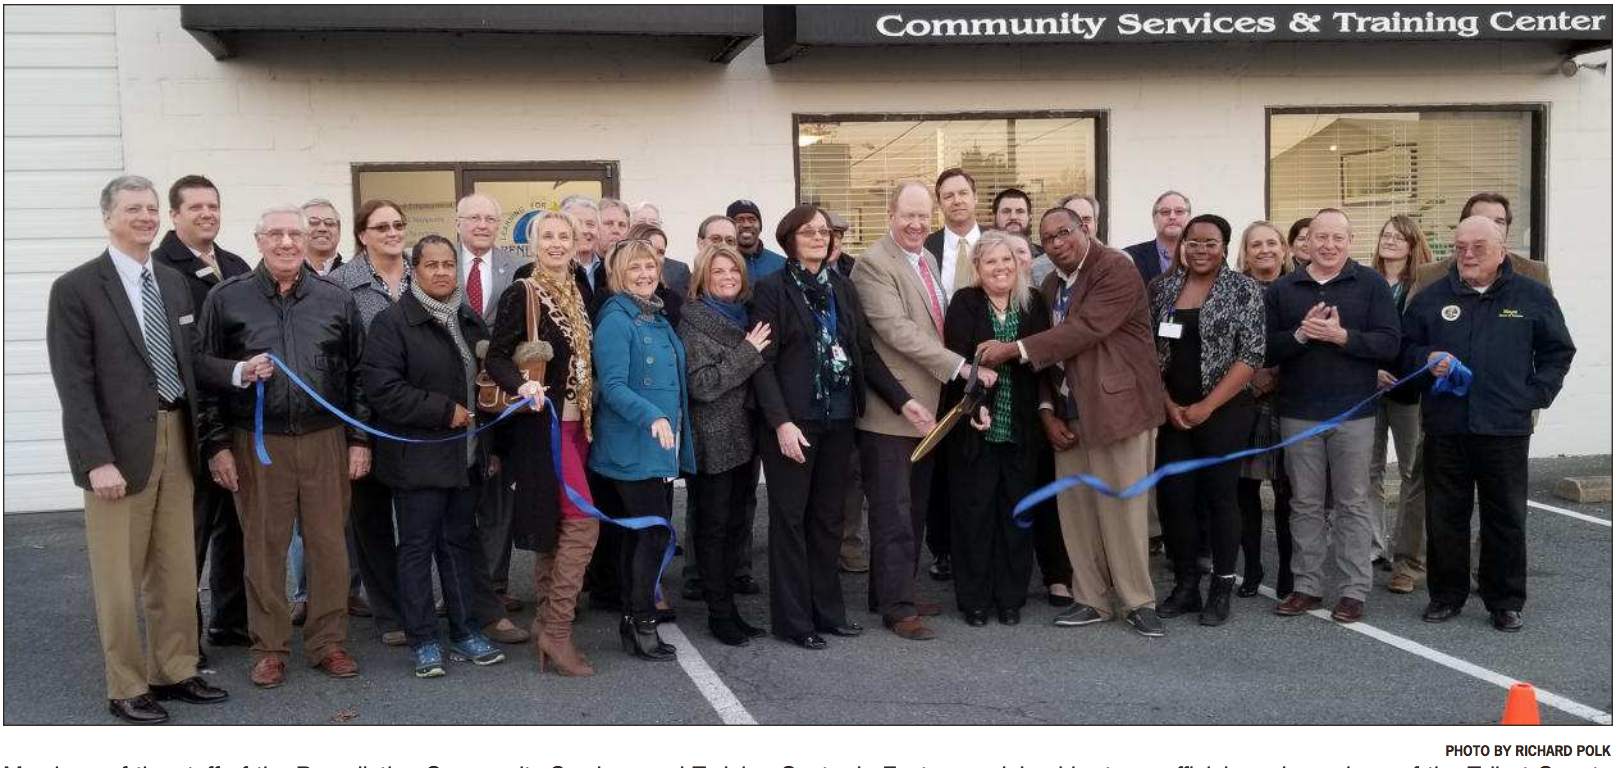 Community Services & Training Center: Opening doors in the community